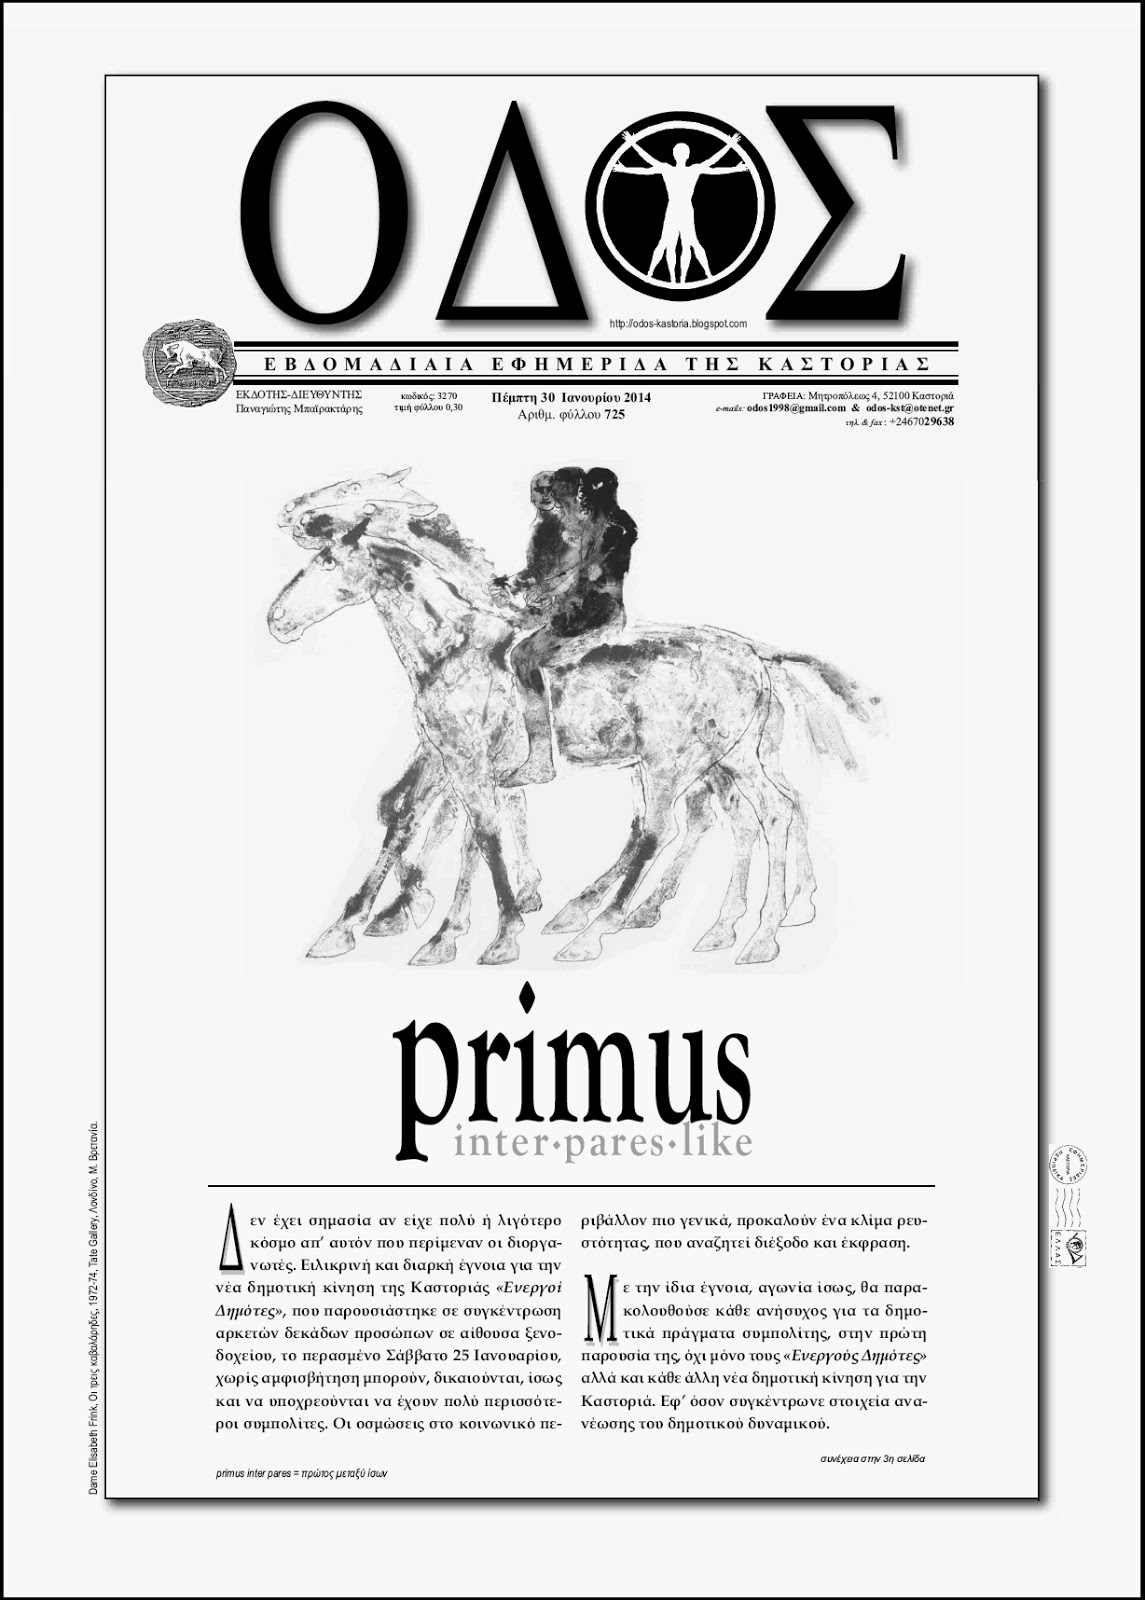 Ρrimus | inter.pares.like